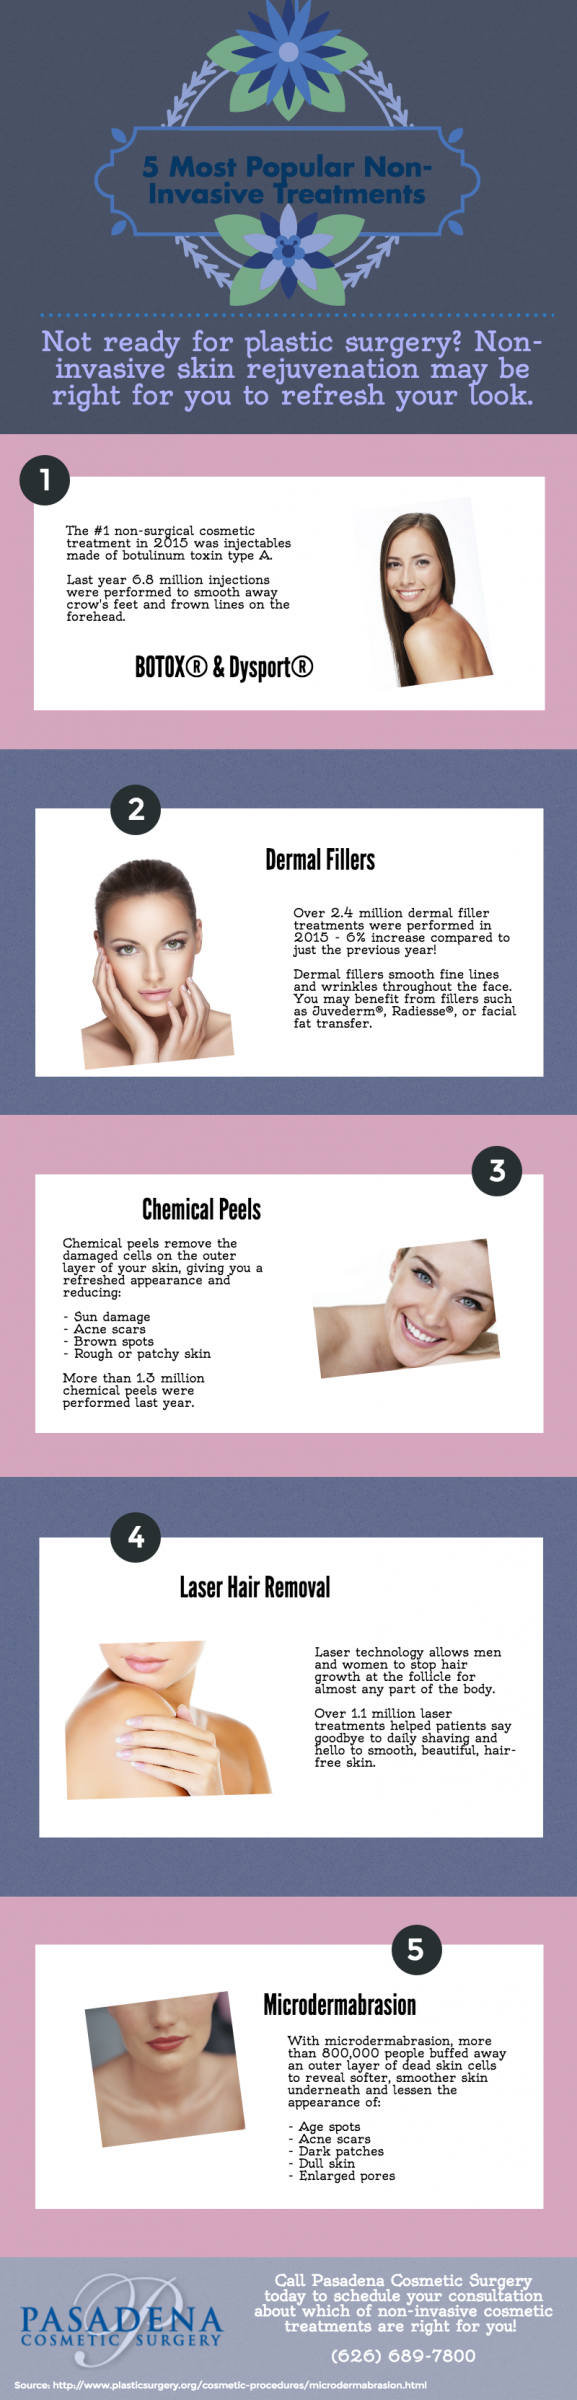 5 Most Popular Non-Invasive Cosmetic Procedures